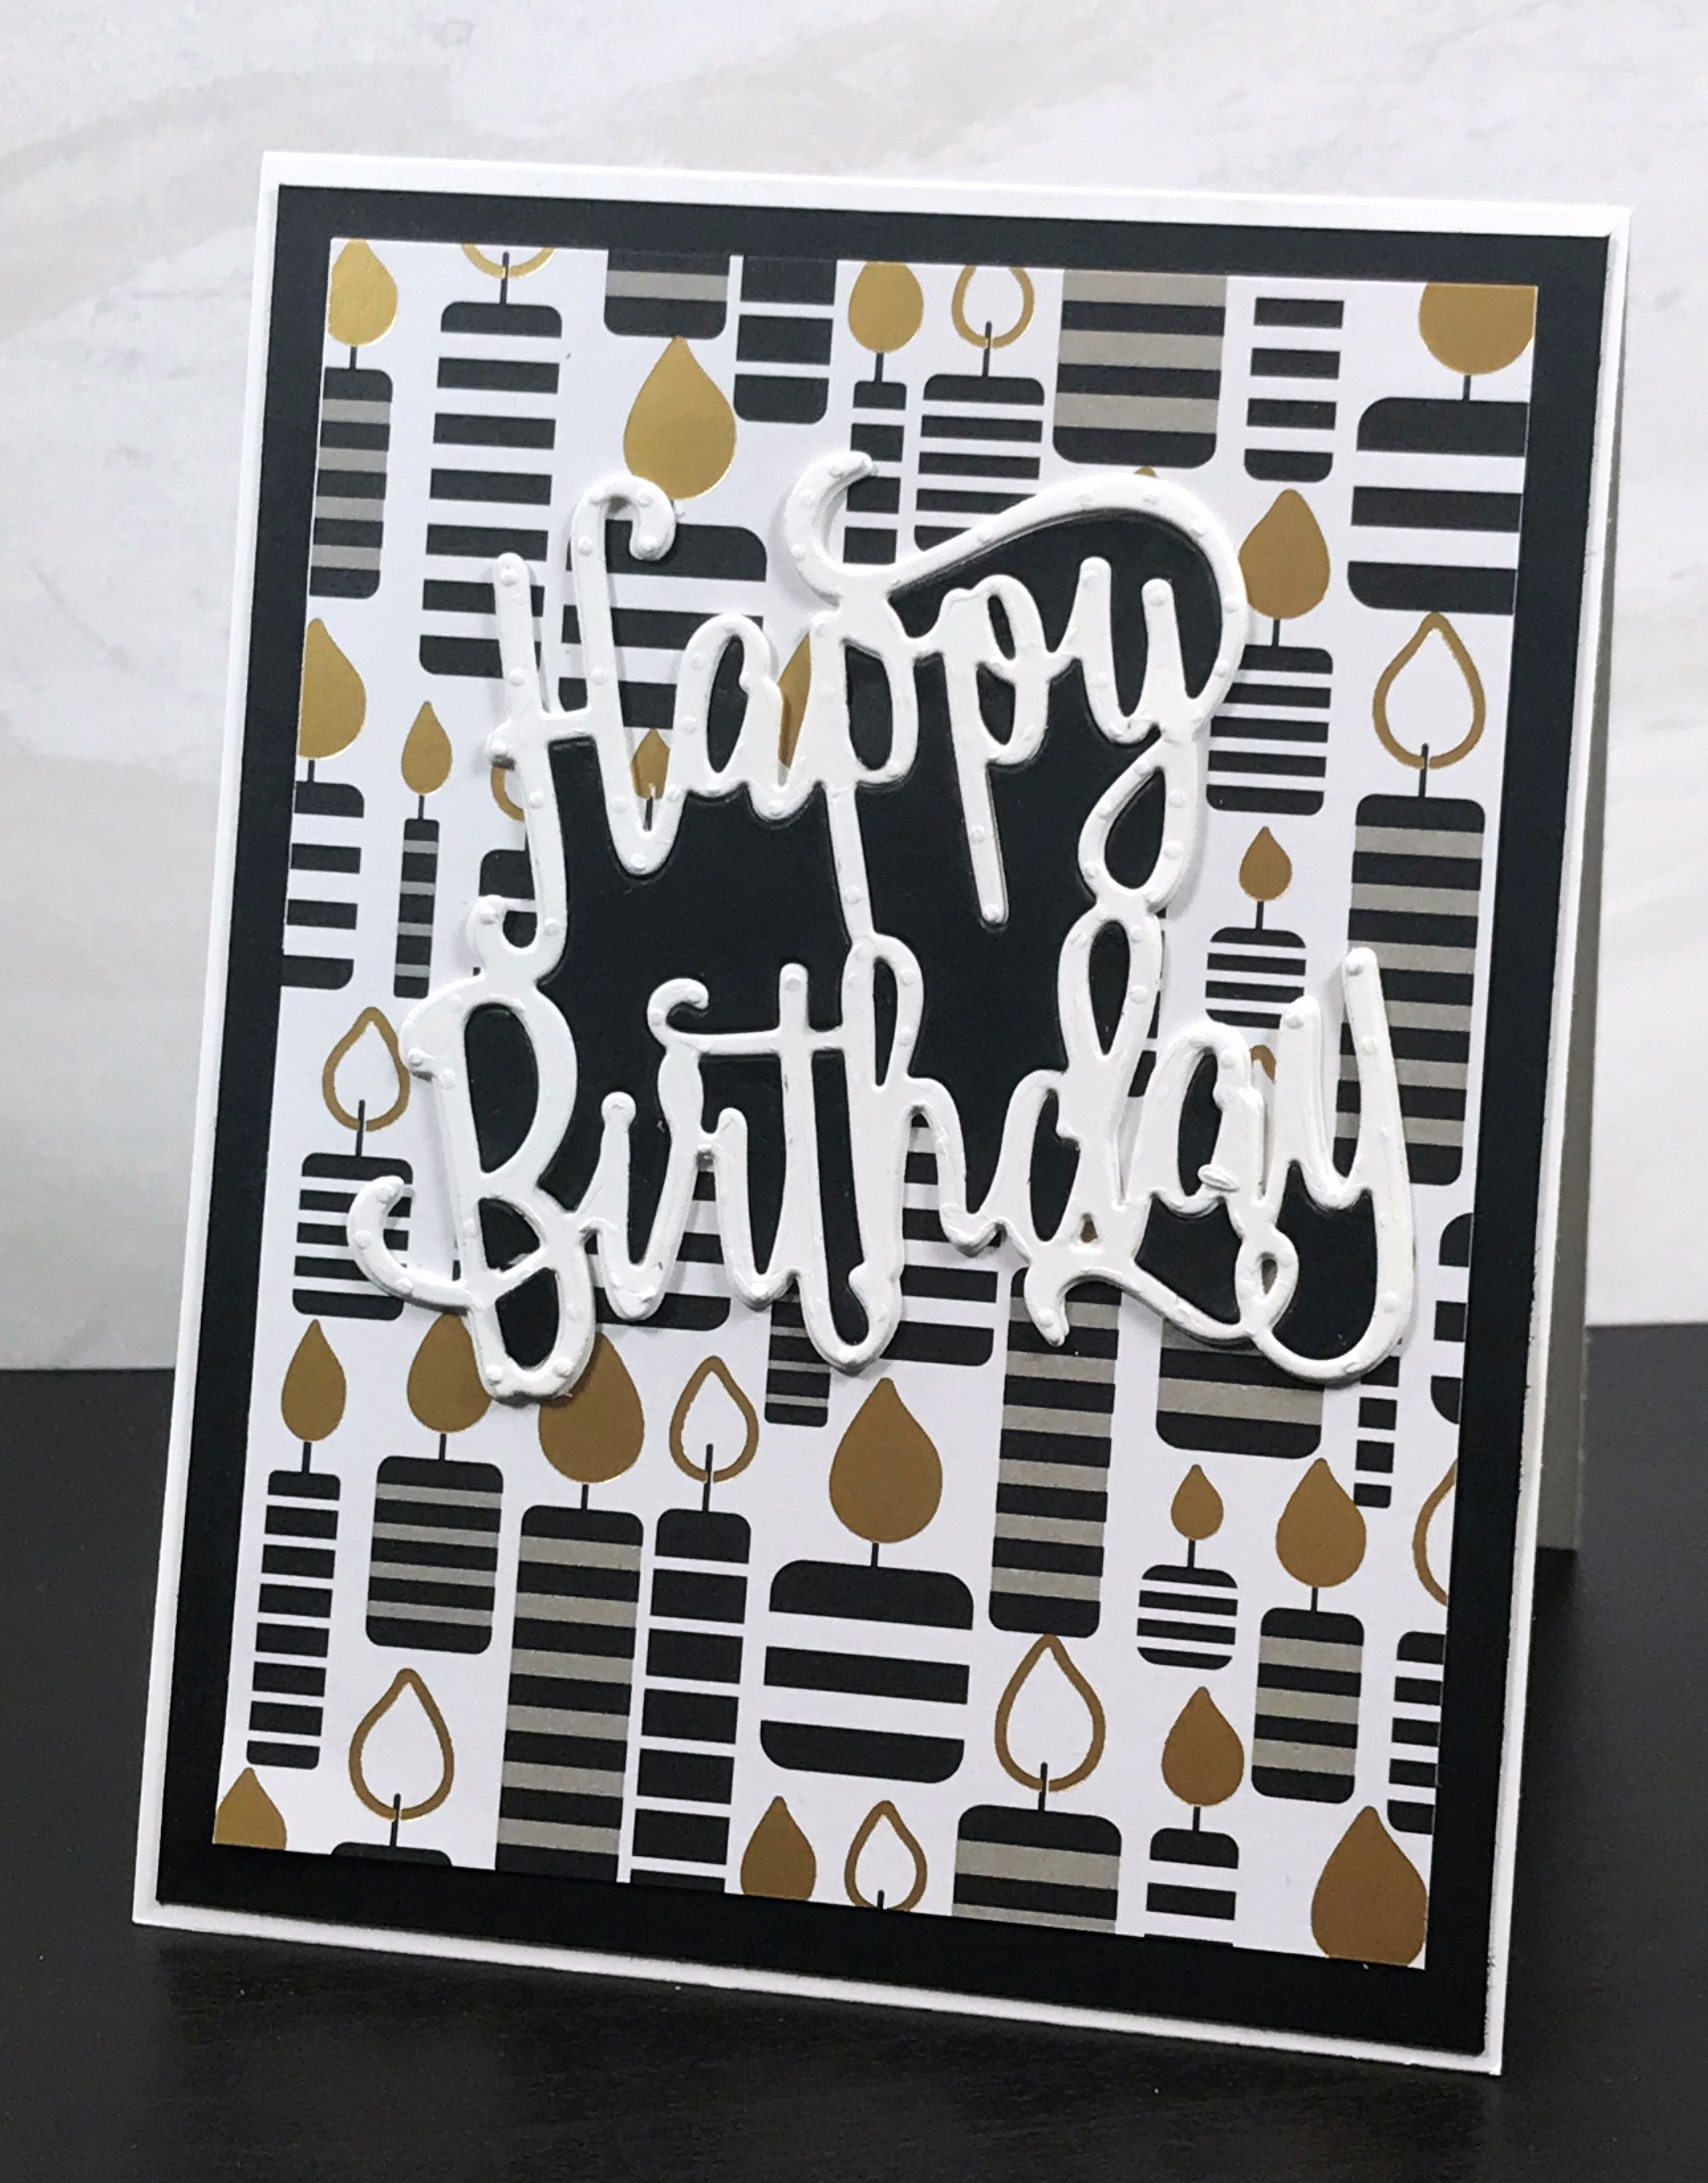 You Can Make A Quick And Easy Happy Birthday Card With Just A Few Things In Order To Add Lots Of Happy Birthday Cards Kids Birthday Cards 60th Birthday Cards